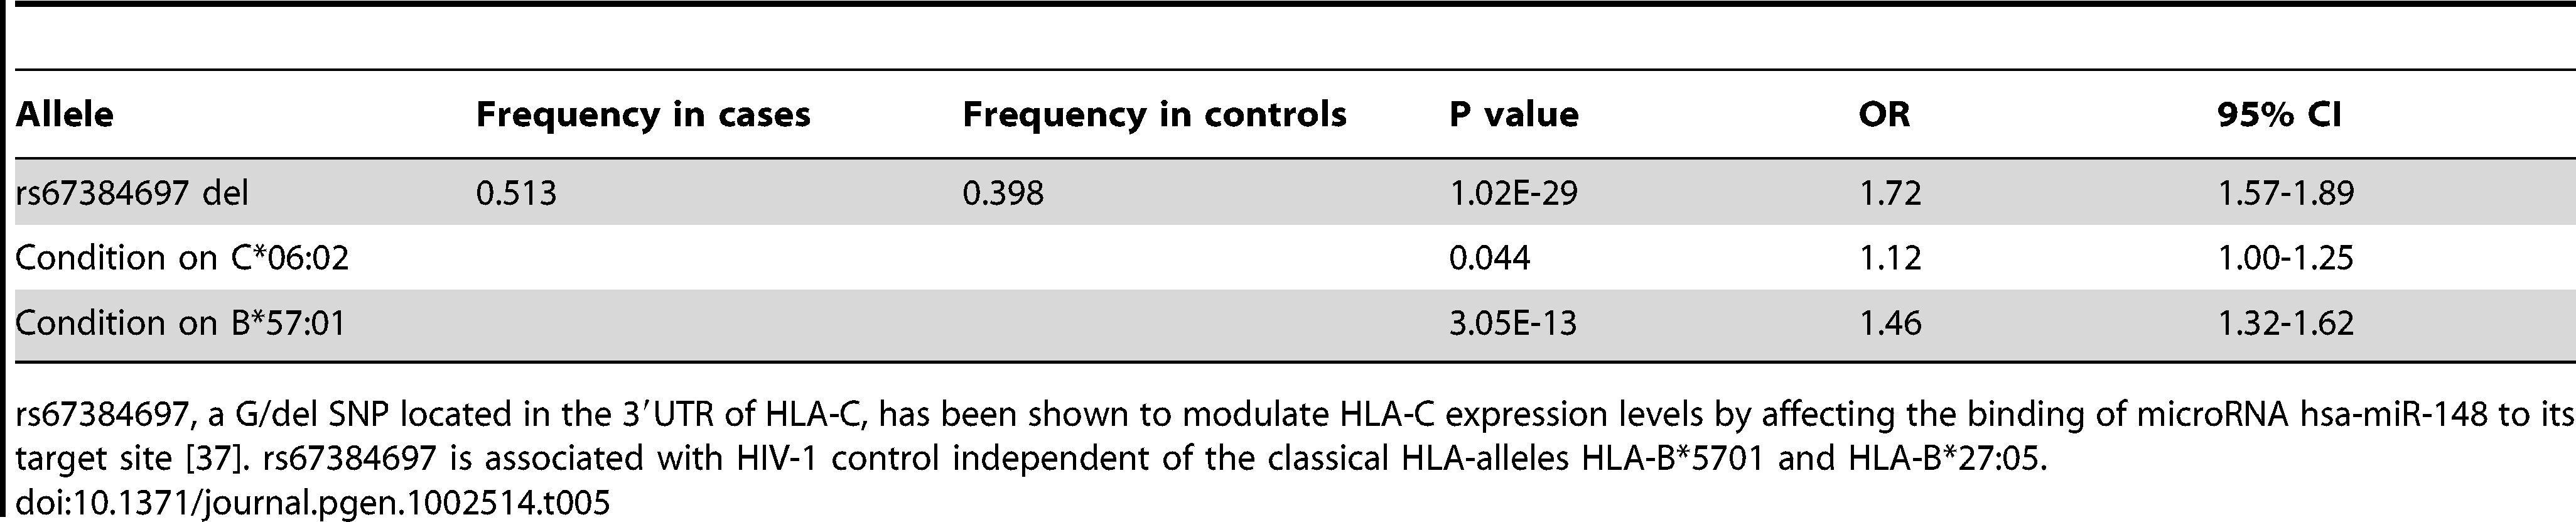 Association of rs67384697 with psoriasis and conditional analysis on HLA-C*06:02 and B*57:01.